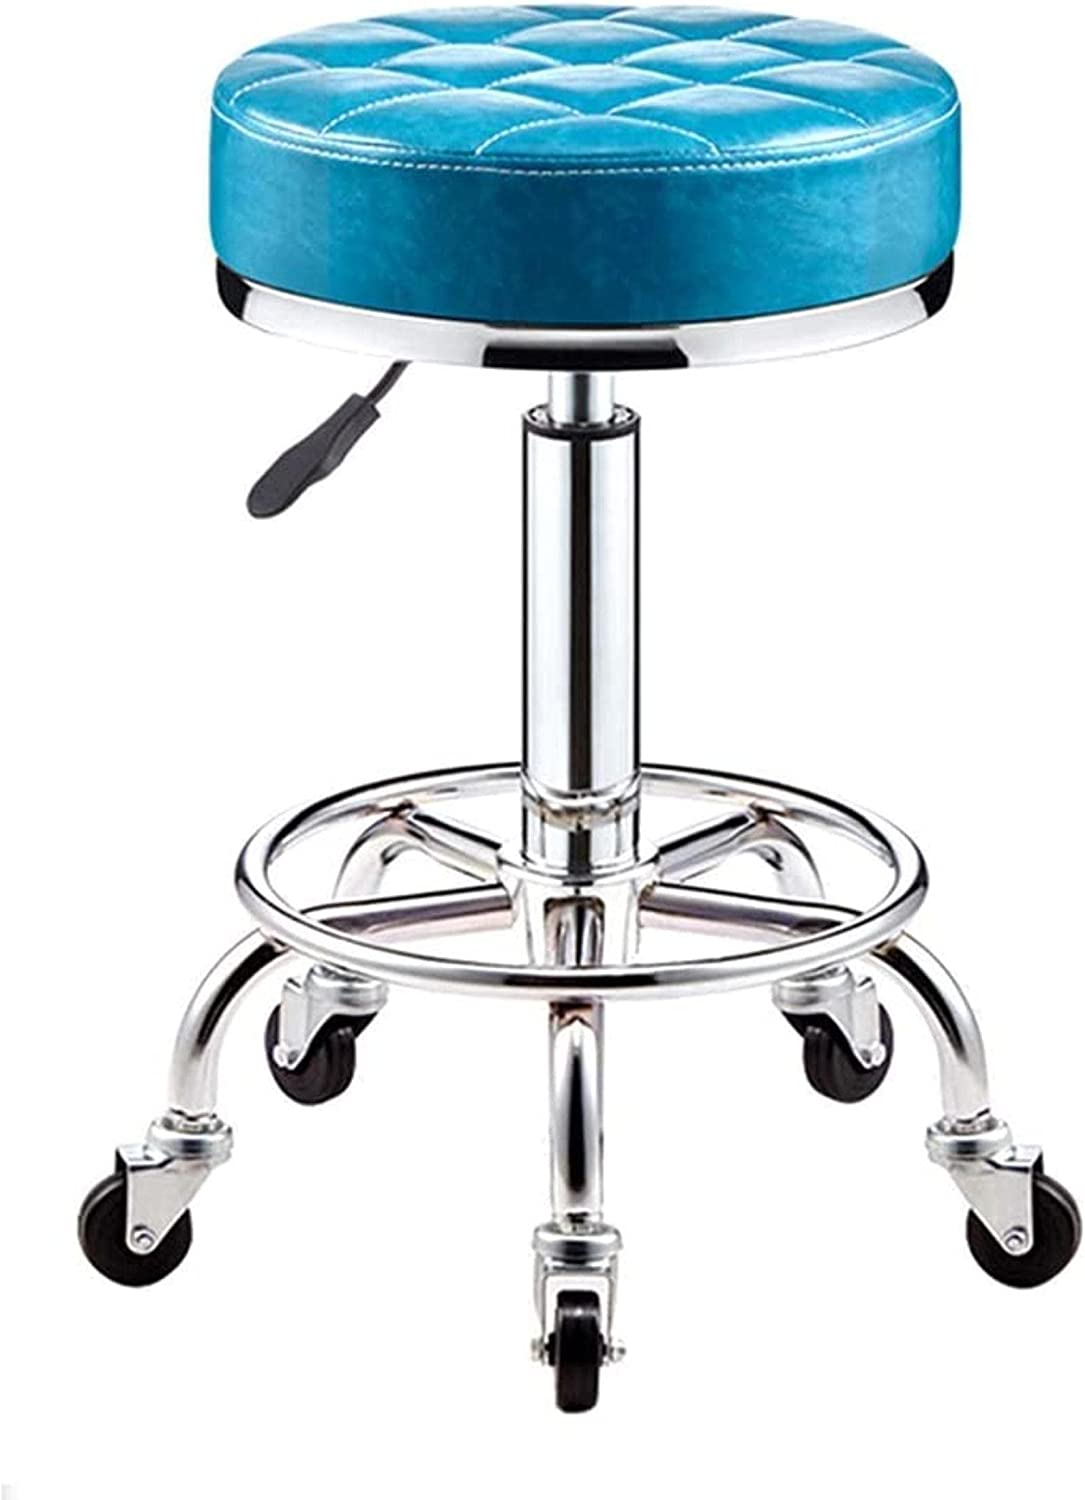 JYHS Bar Stool Ottoman Rolling Height Swivel with Max 46% OFF Max 71% OFF Wheels